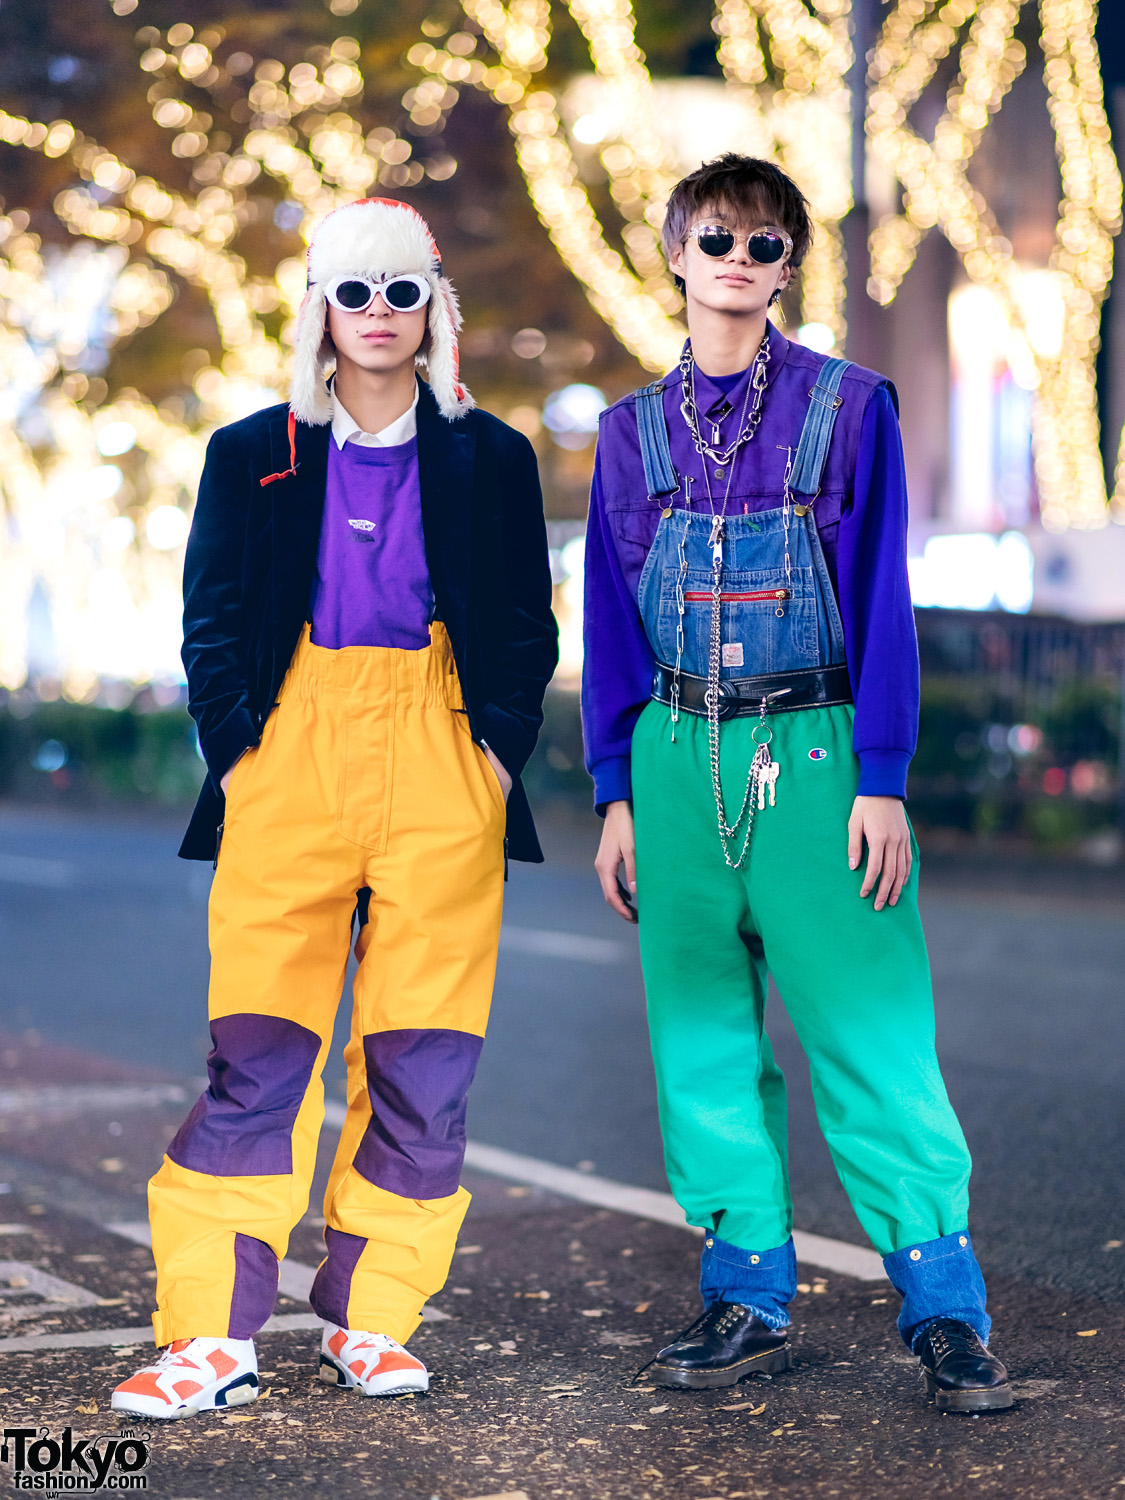 Harajuku Guys Streetwear Styles w/ United Arrows, Ellesse, Vans, Dr. Martens, Levi's, Champion, Jam Home Made & Nike Air Jordans